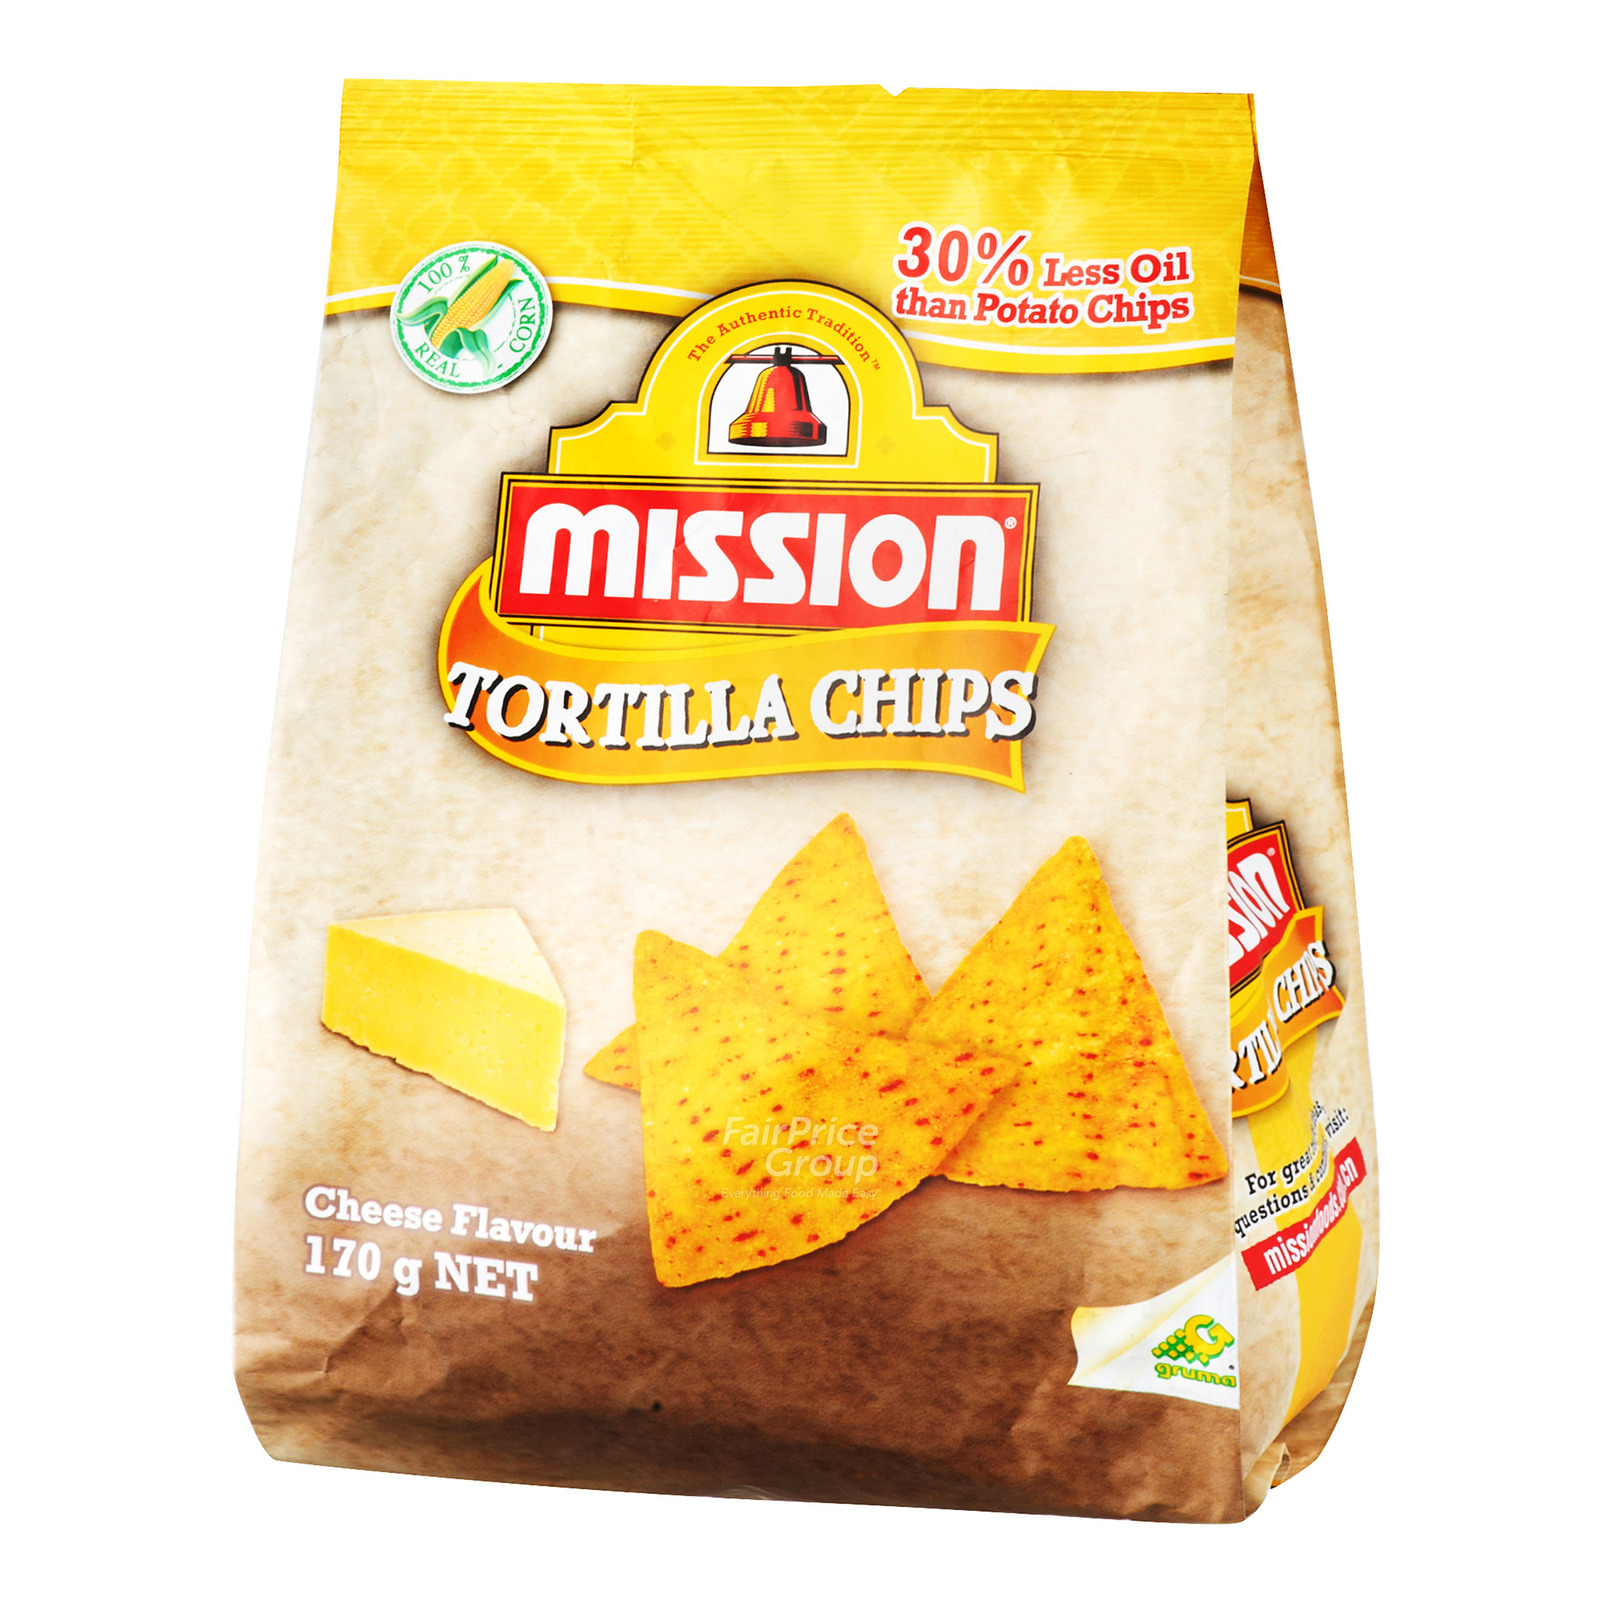 Mission Tortilla Chips - Cheese